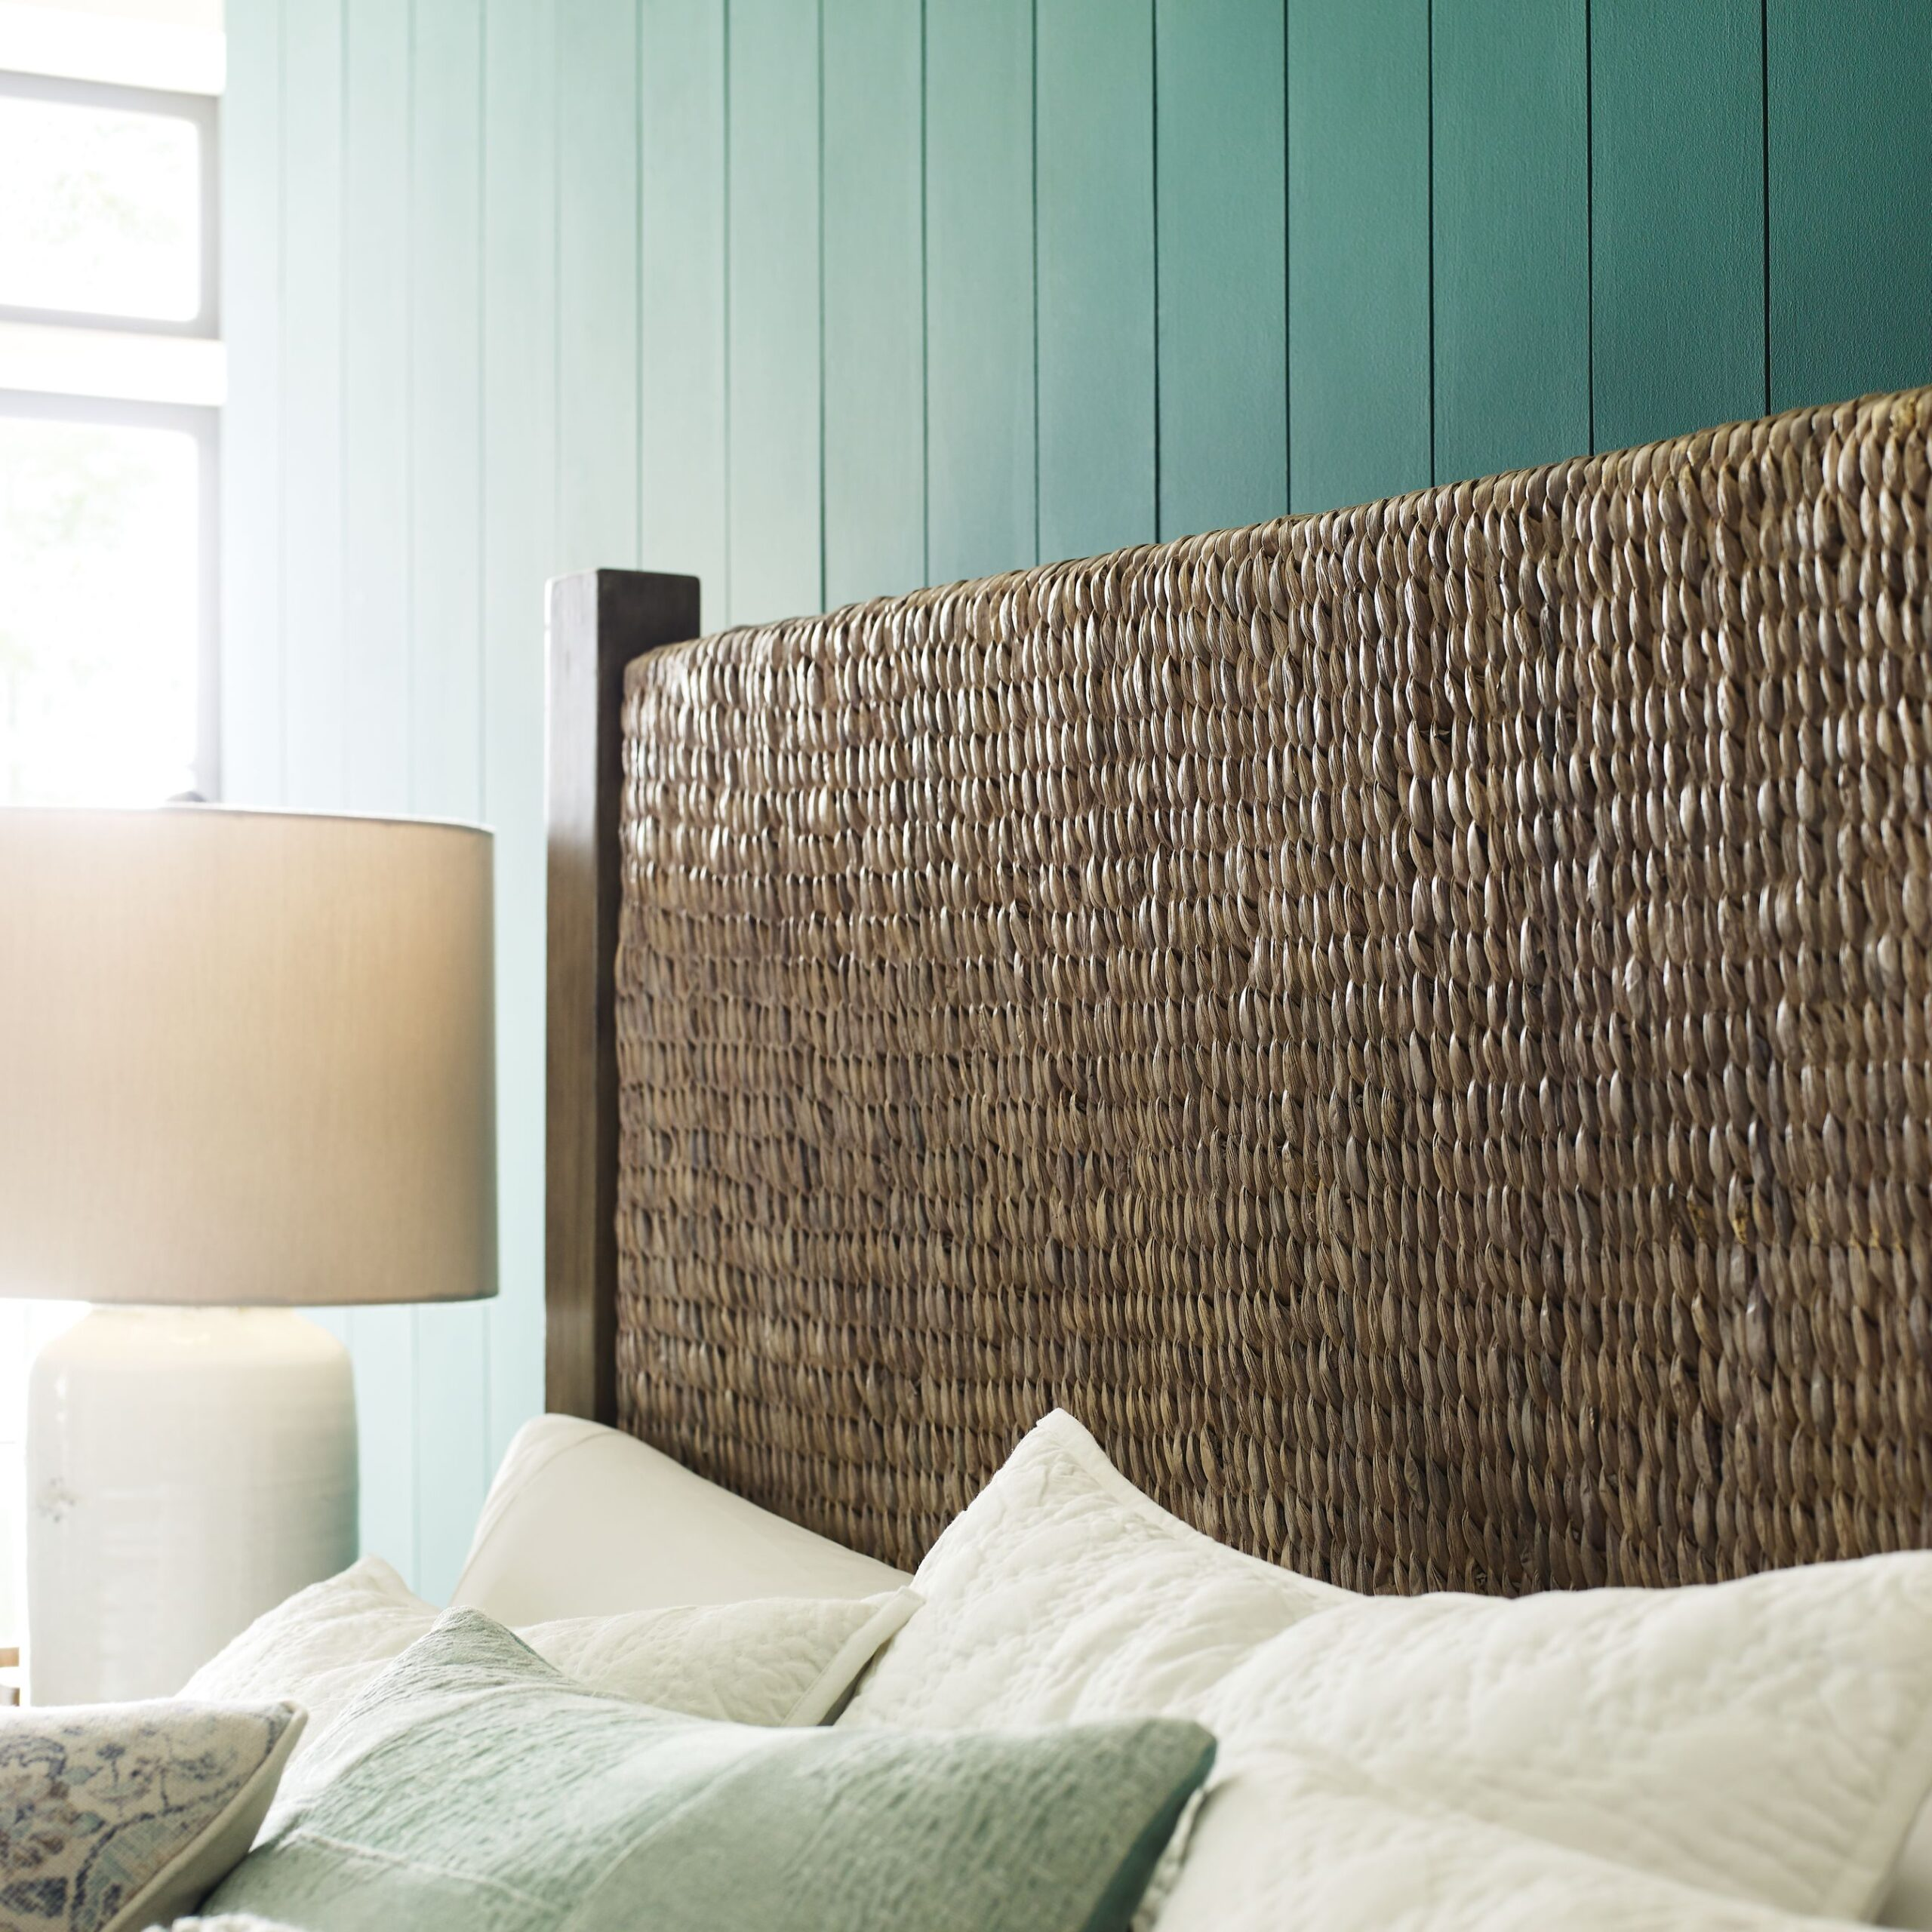 Upholstered Headboards at Surfside Casual Furniture